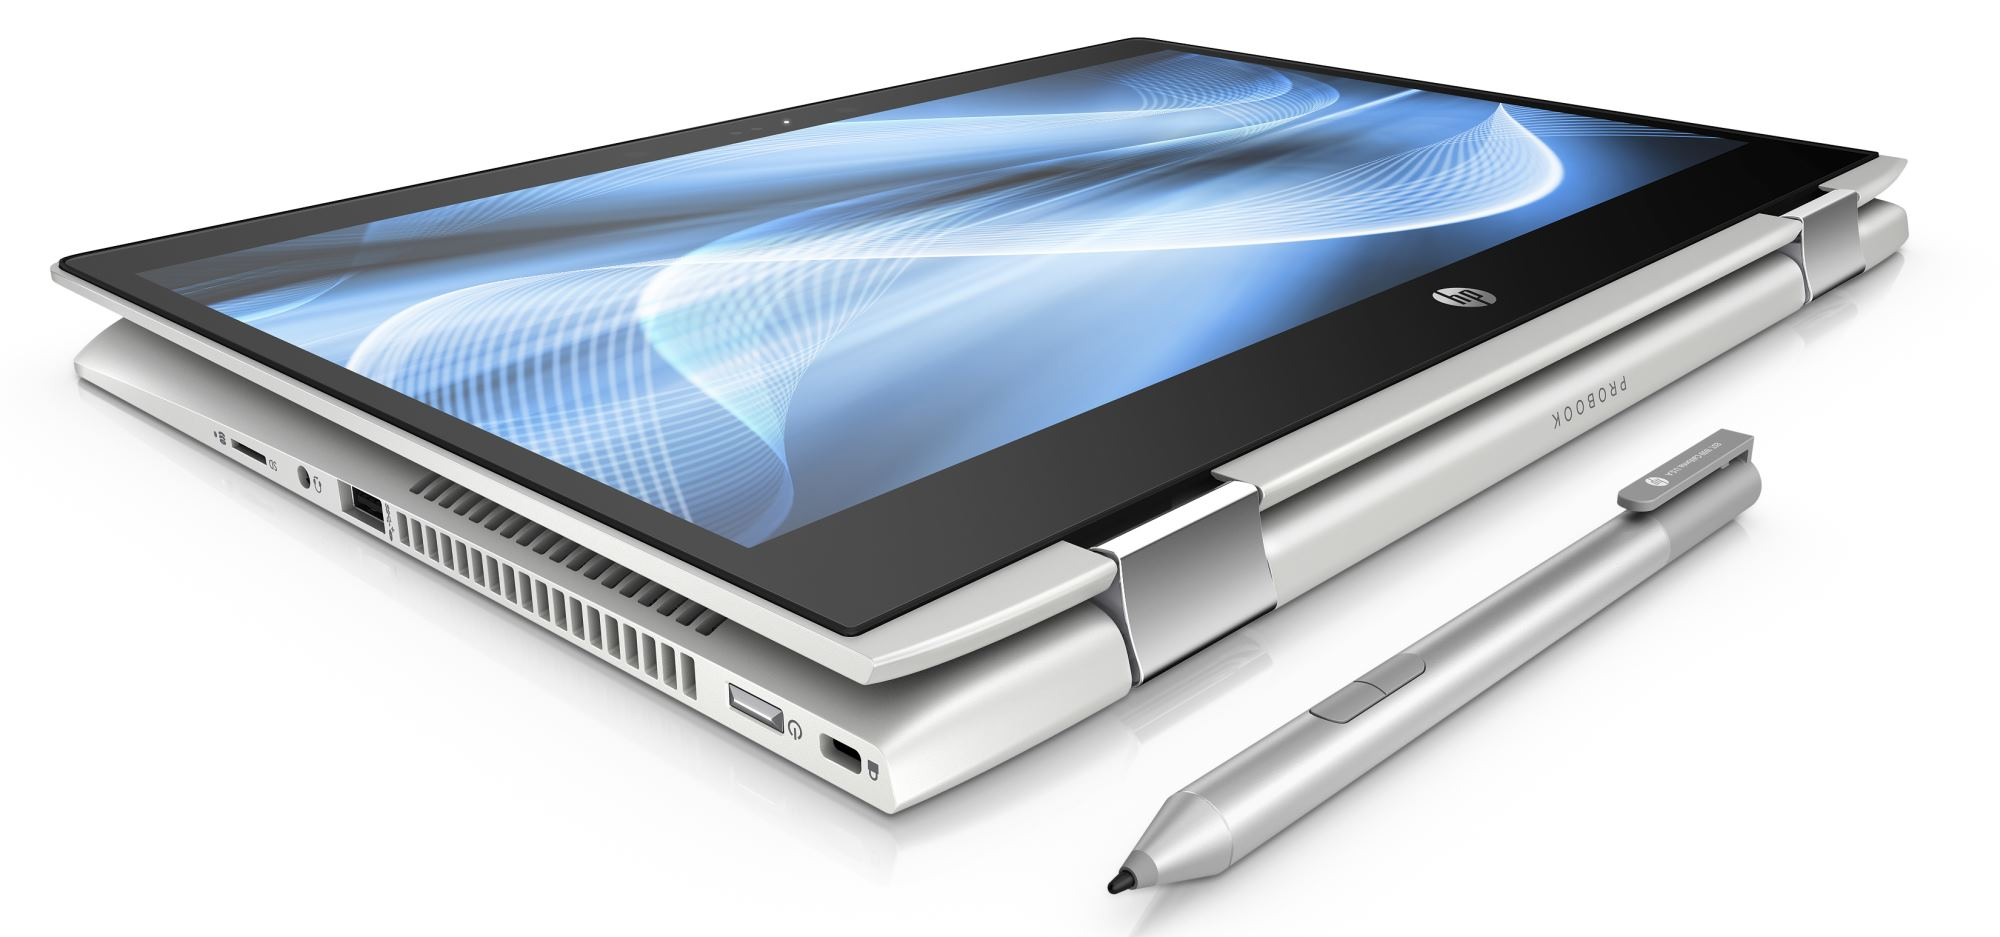 HP Announces ProBook x360 440 G1 Notebook: Slim and Secure Convertible